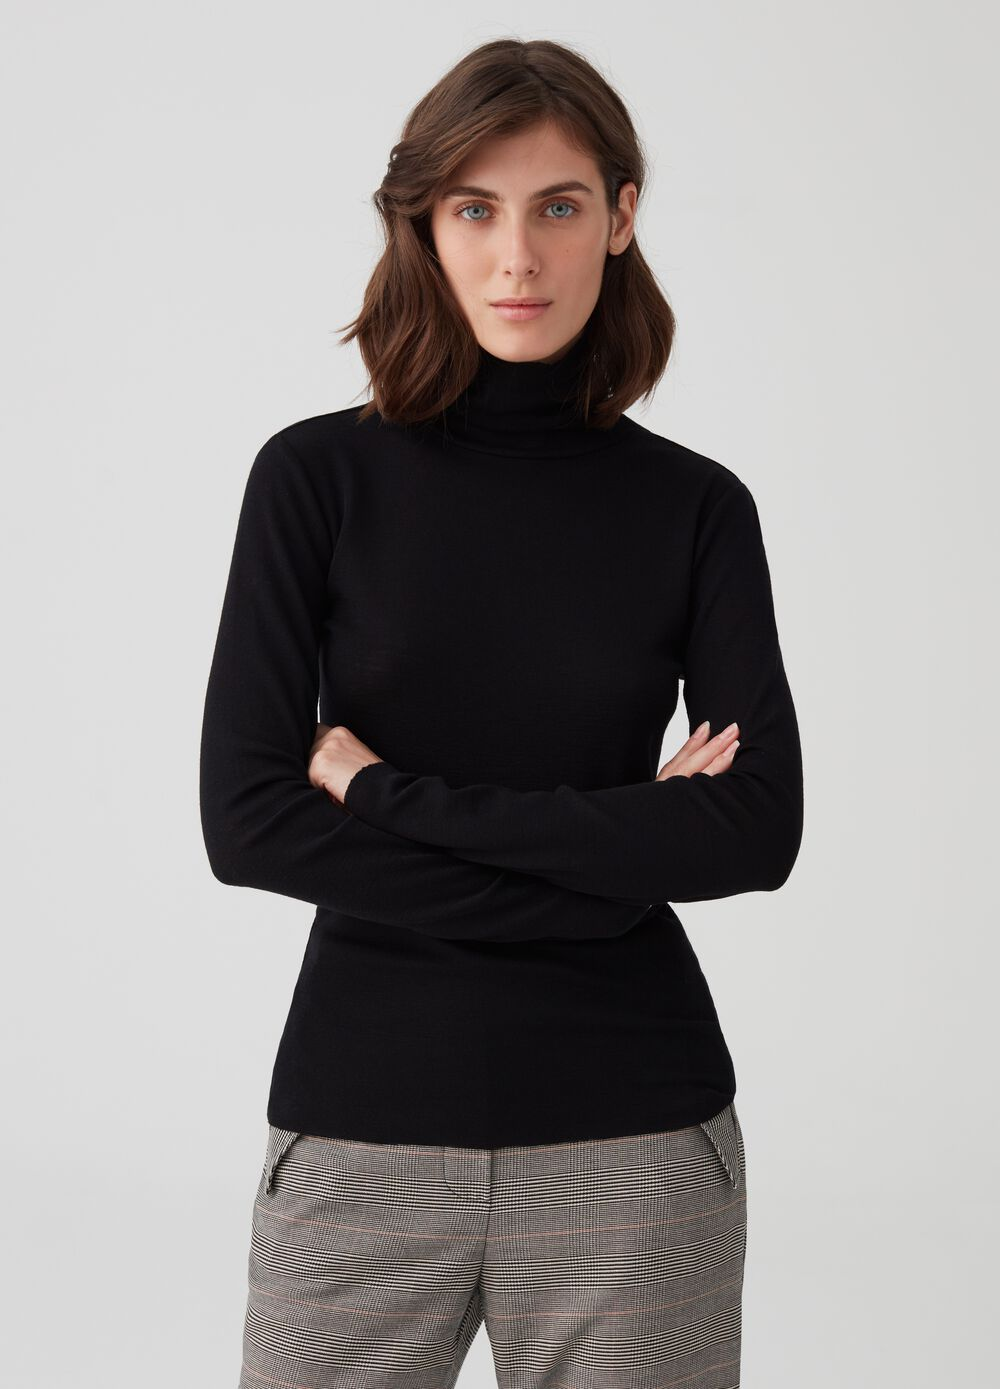 Wool T-shirt with long sleeves and high neck